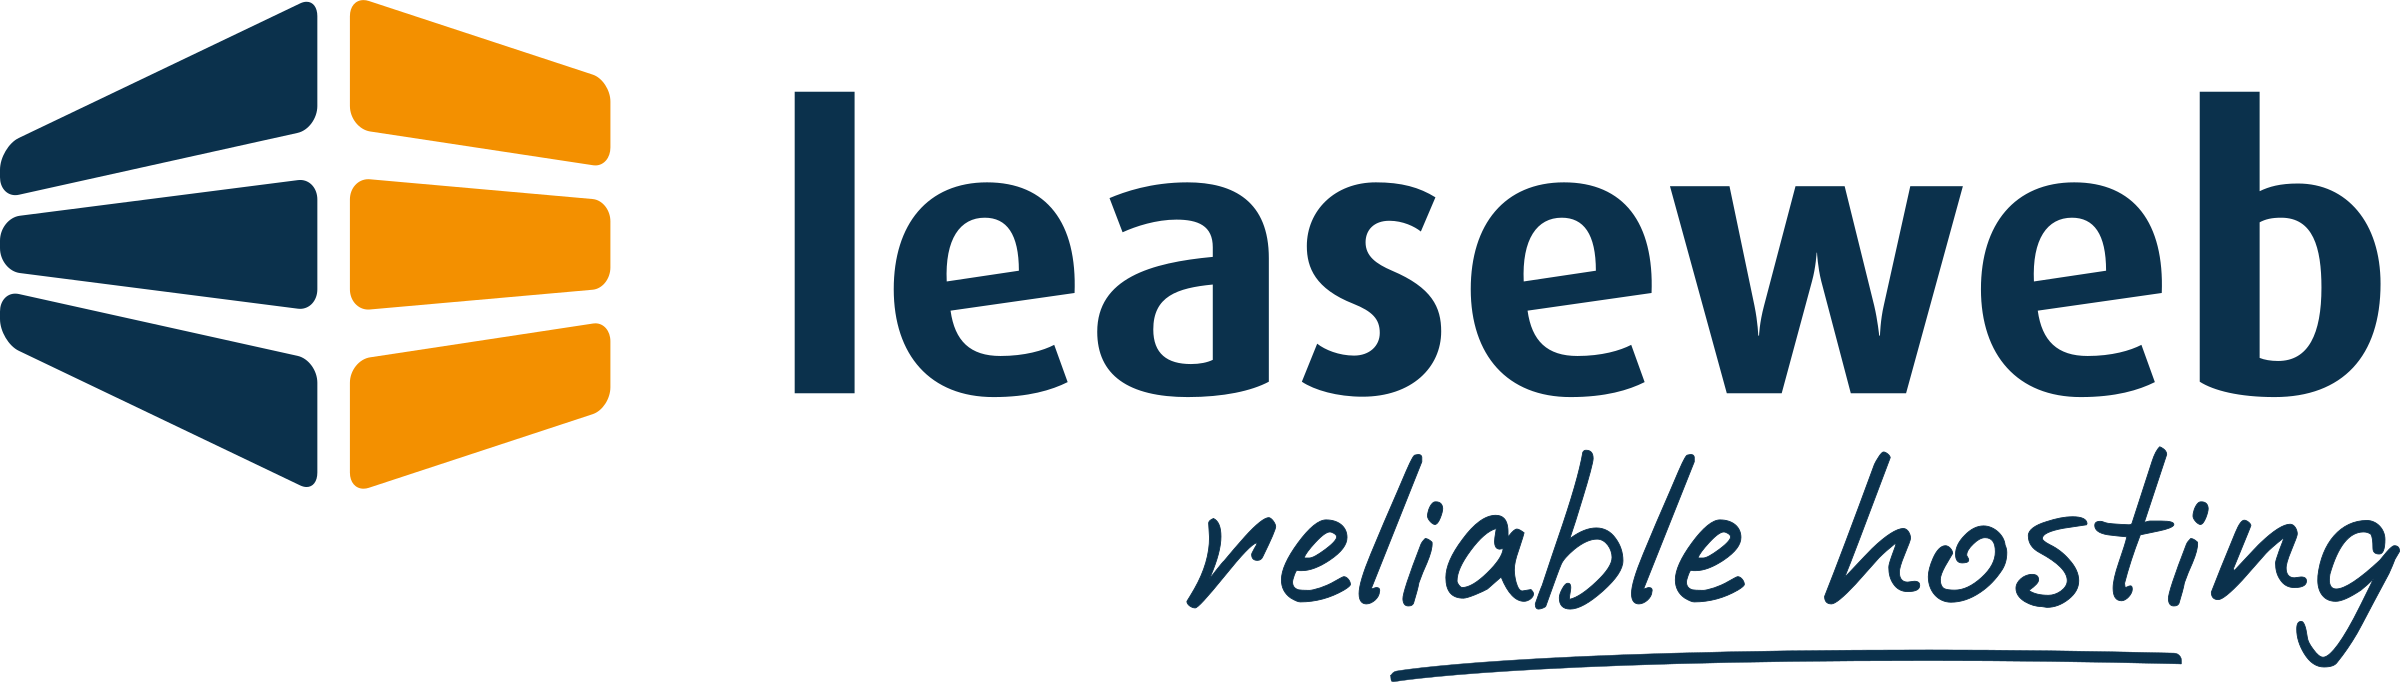 leaseweb-logo-png-transparent